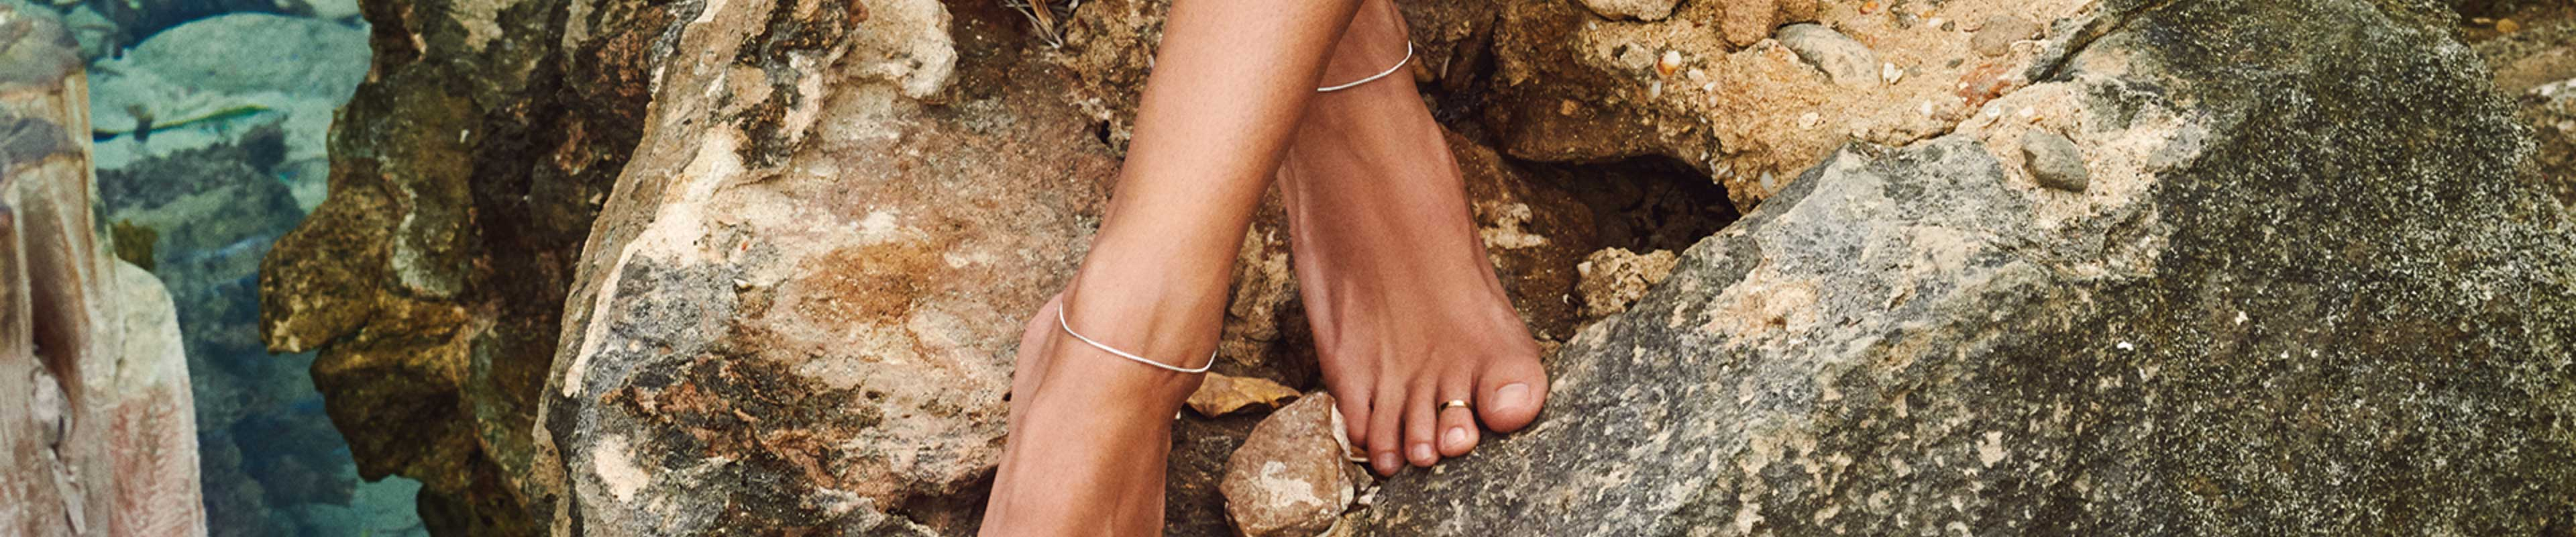 Ankle chains are the new black! They are the perfect summer accessory and a solid way to underscore your femininity. Ankle chains are the epitomization of summer and a great way to add a little boho sophistication to your look. All our ankle chains are handmade and designed in Denmark, plated with real gold, silver, rosegold or hematite and free from nickel.